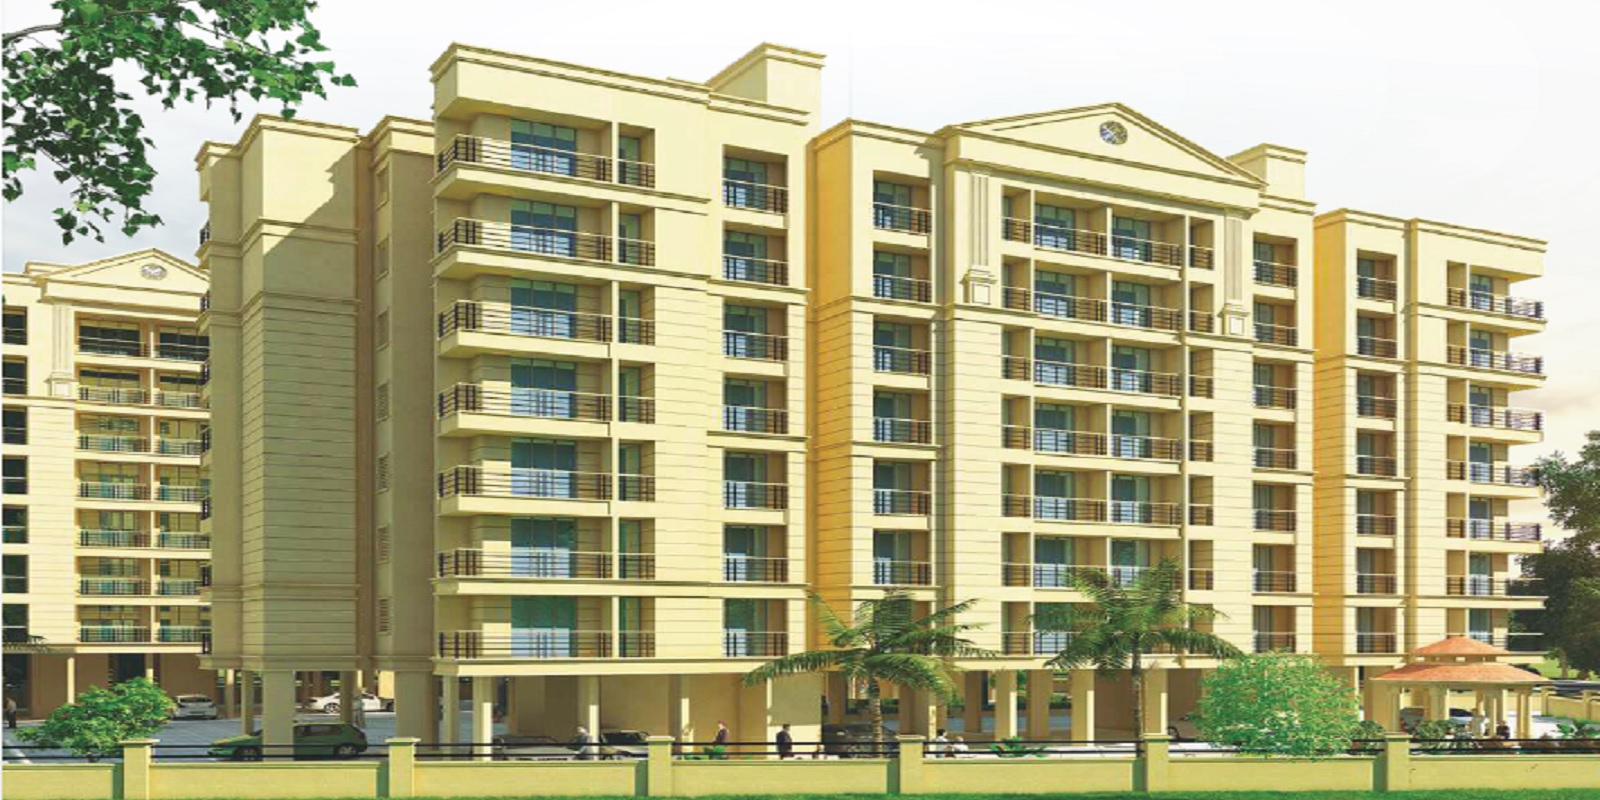 iqra vista valley project project large image1